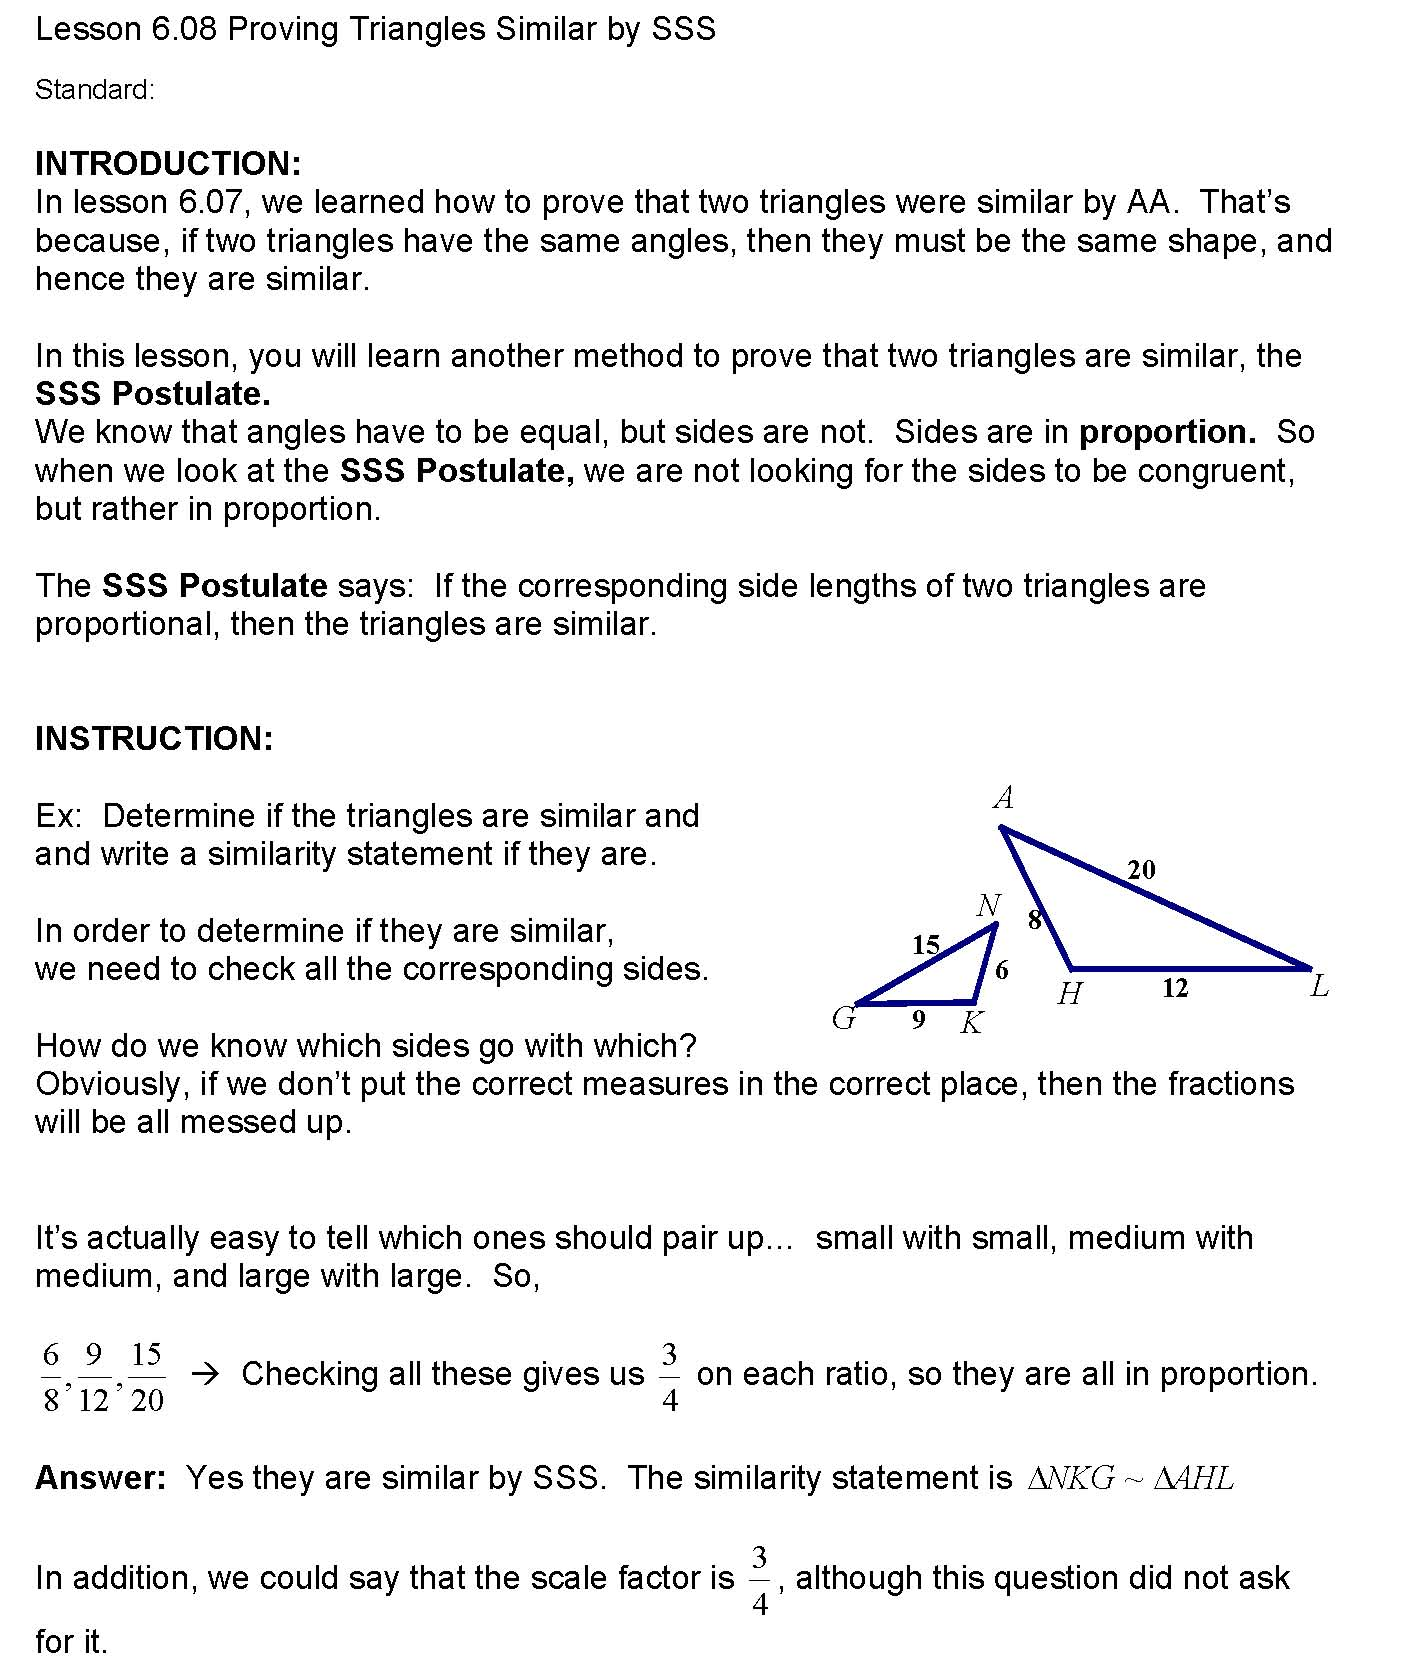 Worksheets Proving Triangles Similar Worksheet cosgeometry lesson 6 08 proving triangles similar by sss